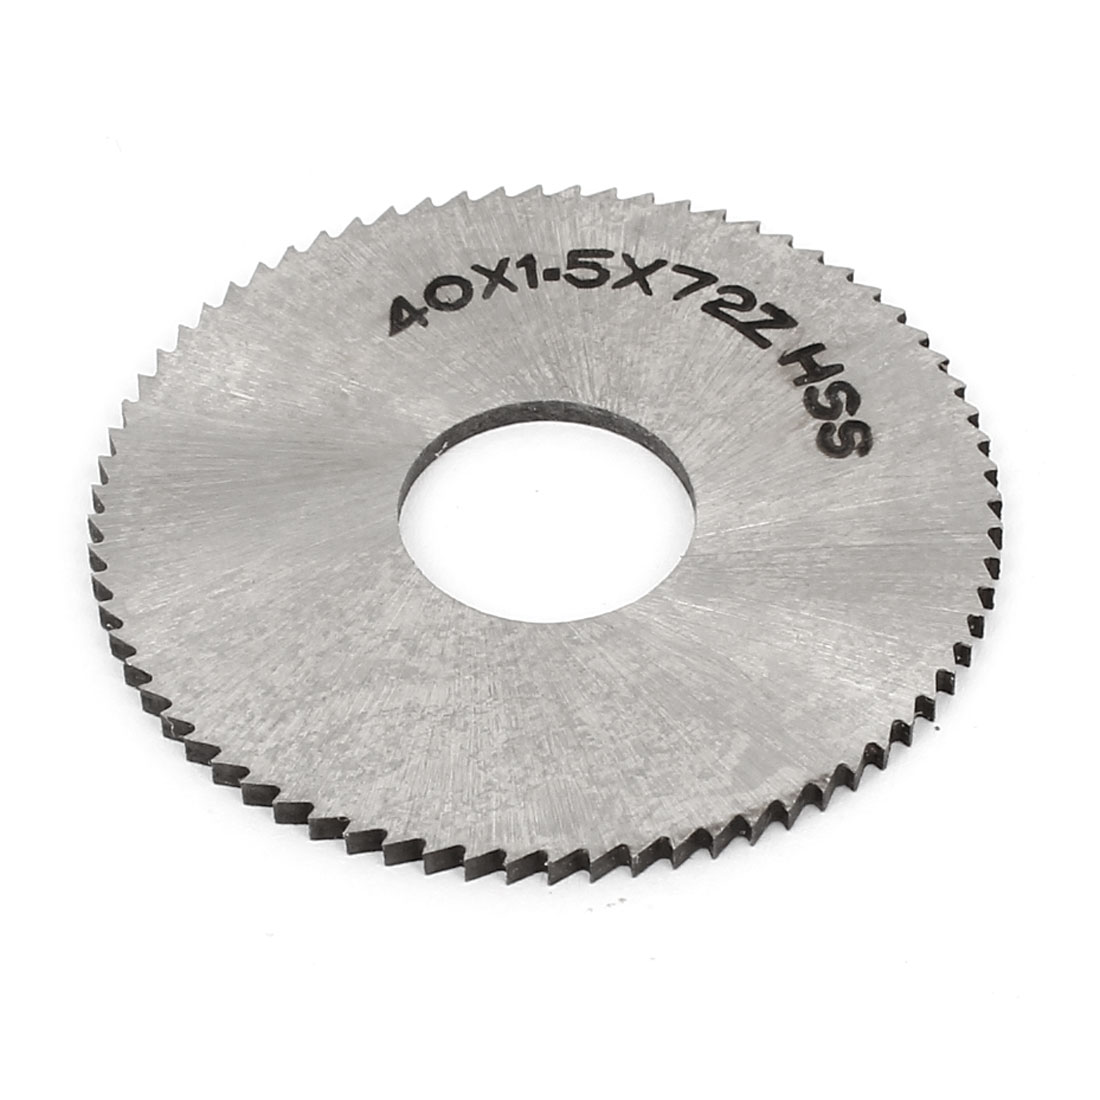 40mm x 1.5mm x 13mm HSS 72 Teeth High Speed Steel Round Grooving Milling Slitting Saw Cutter Cutting Tool Silver Tone